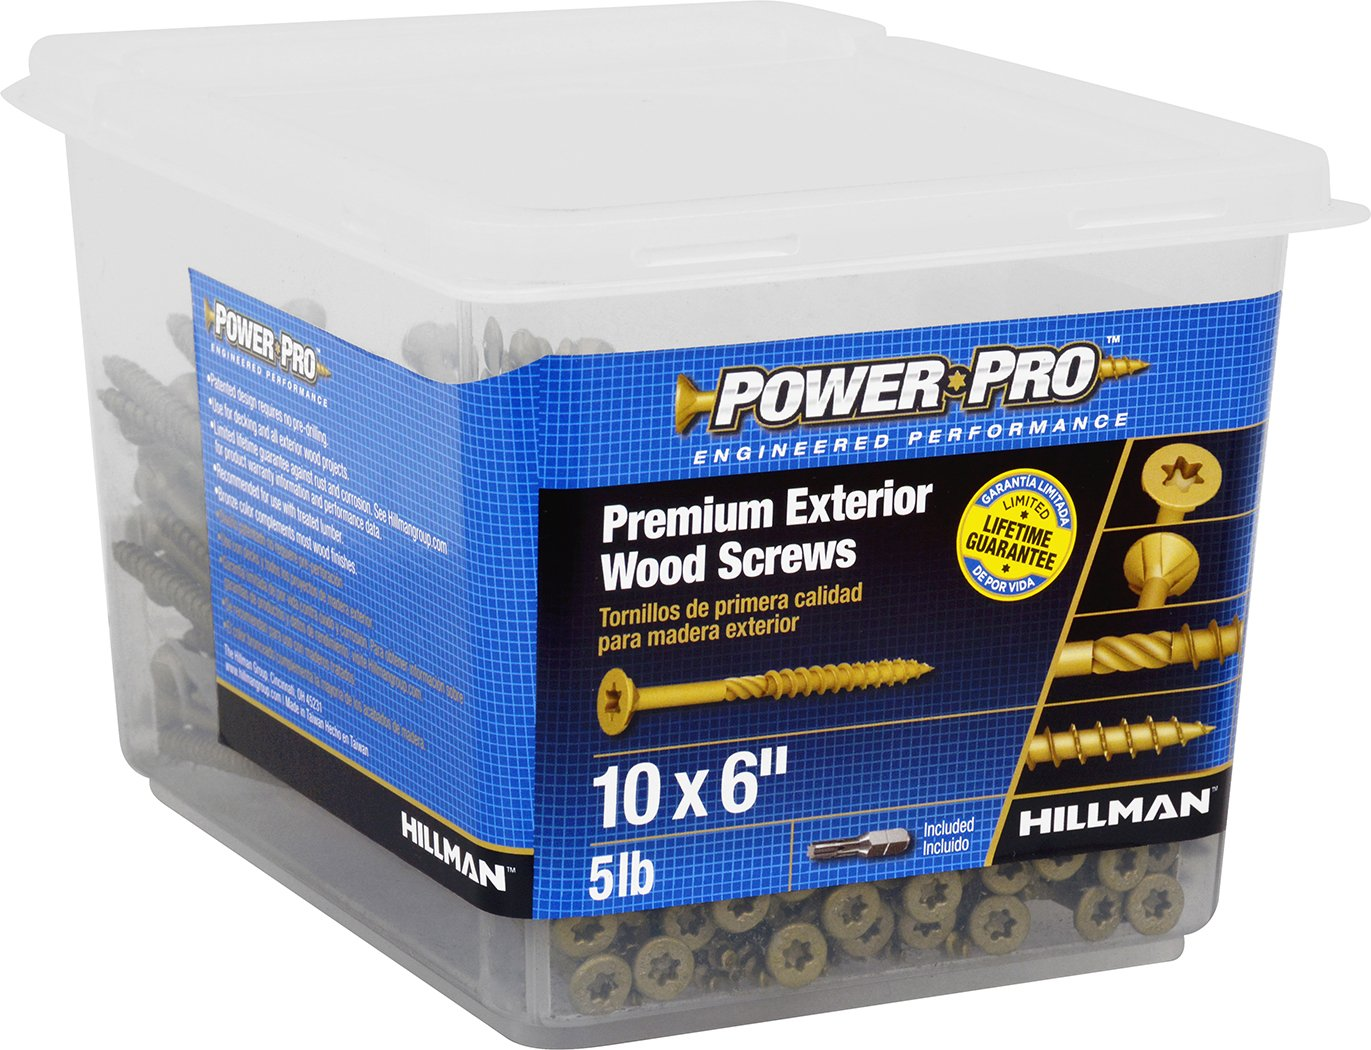 Hillman 48618 Power Pro Premium Exterior Wood Screw 10 X 6-Inch 191 pack The Hillman Group